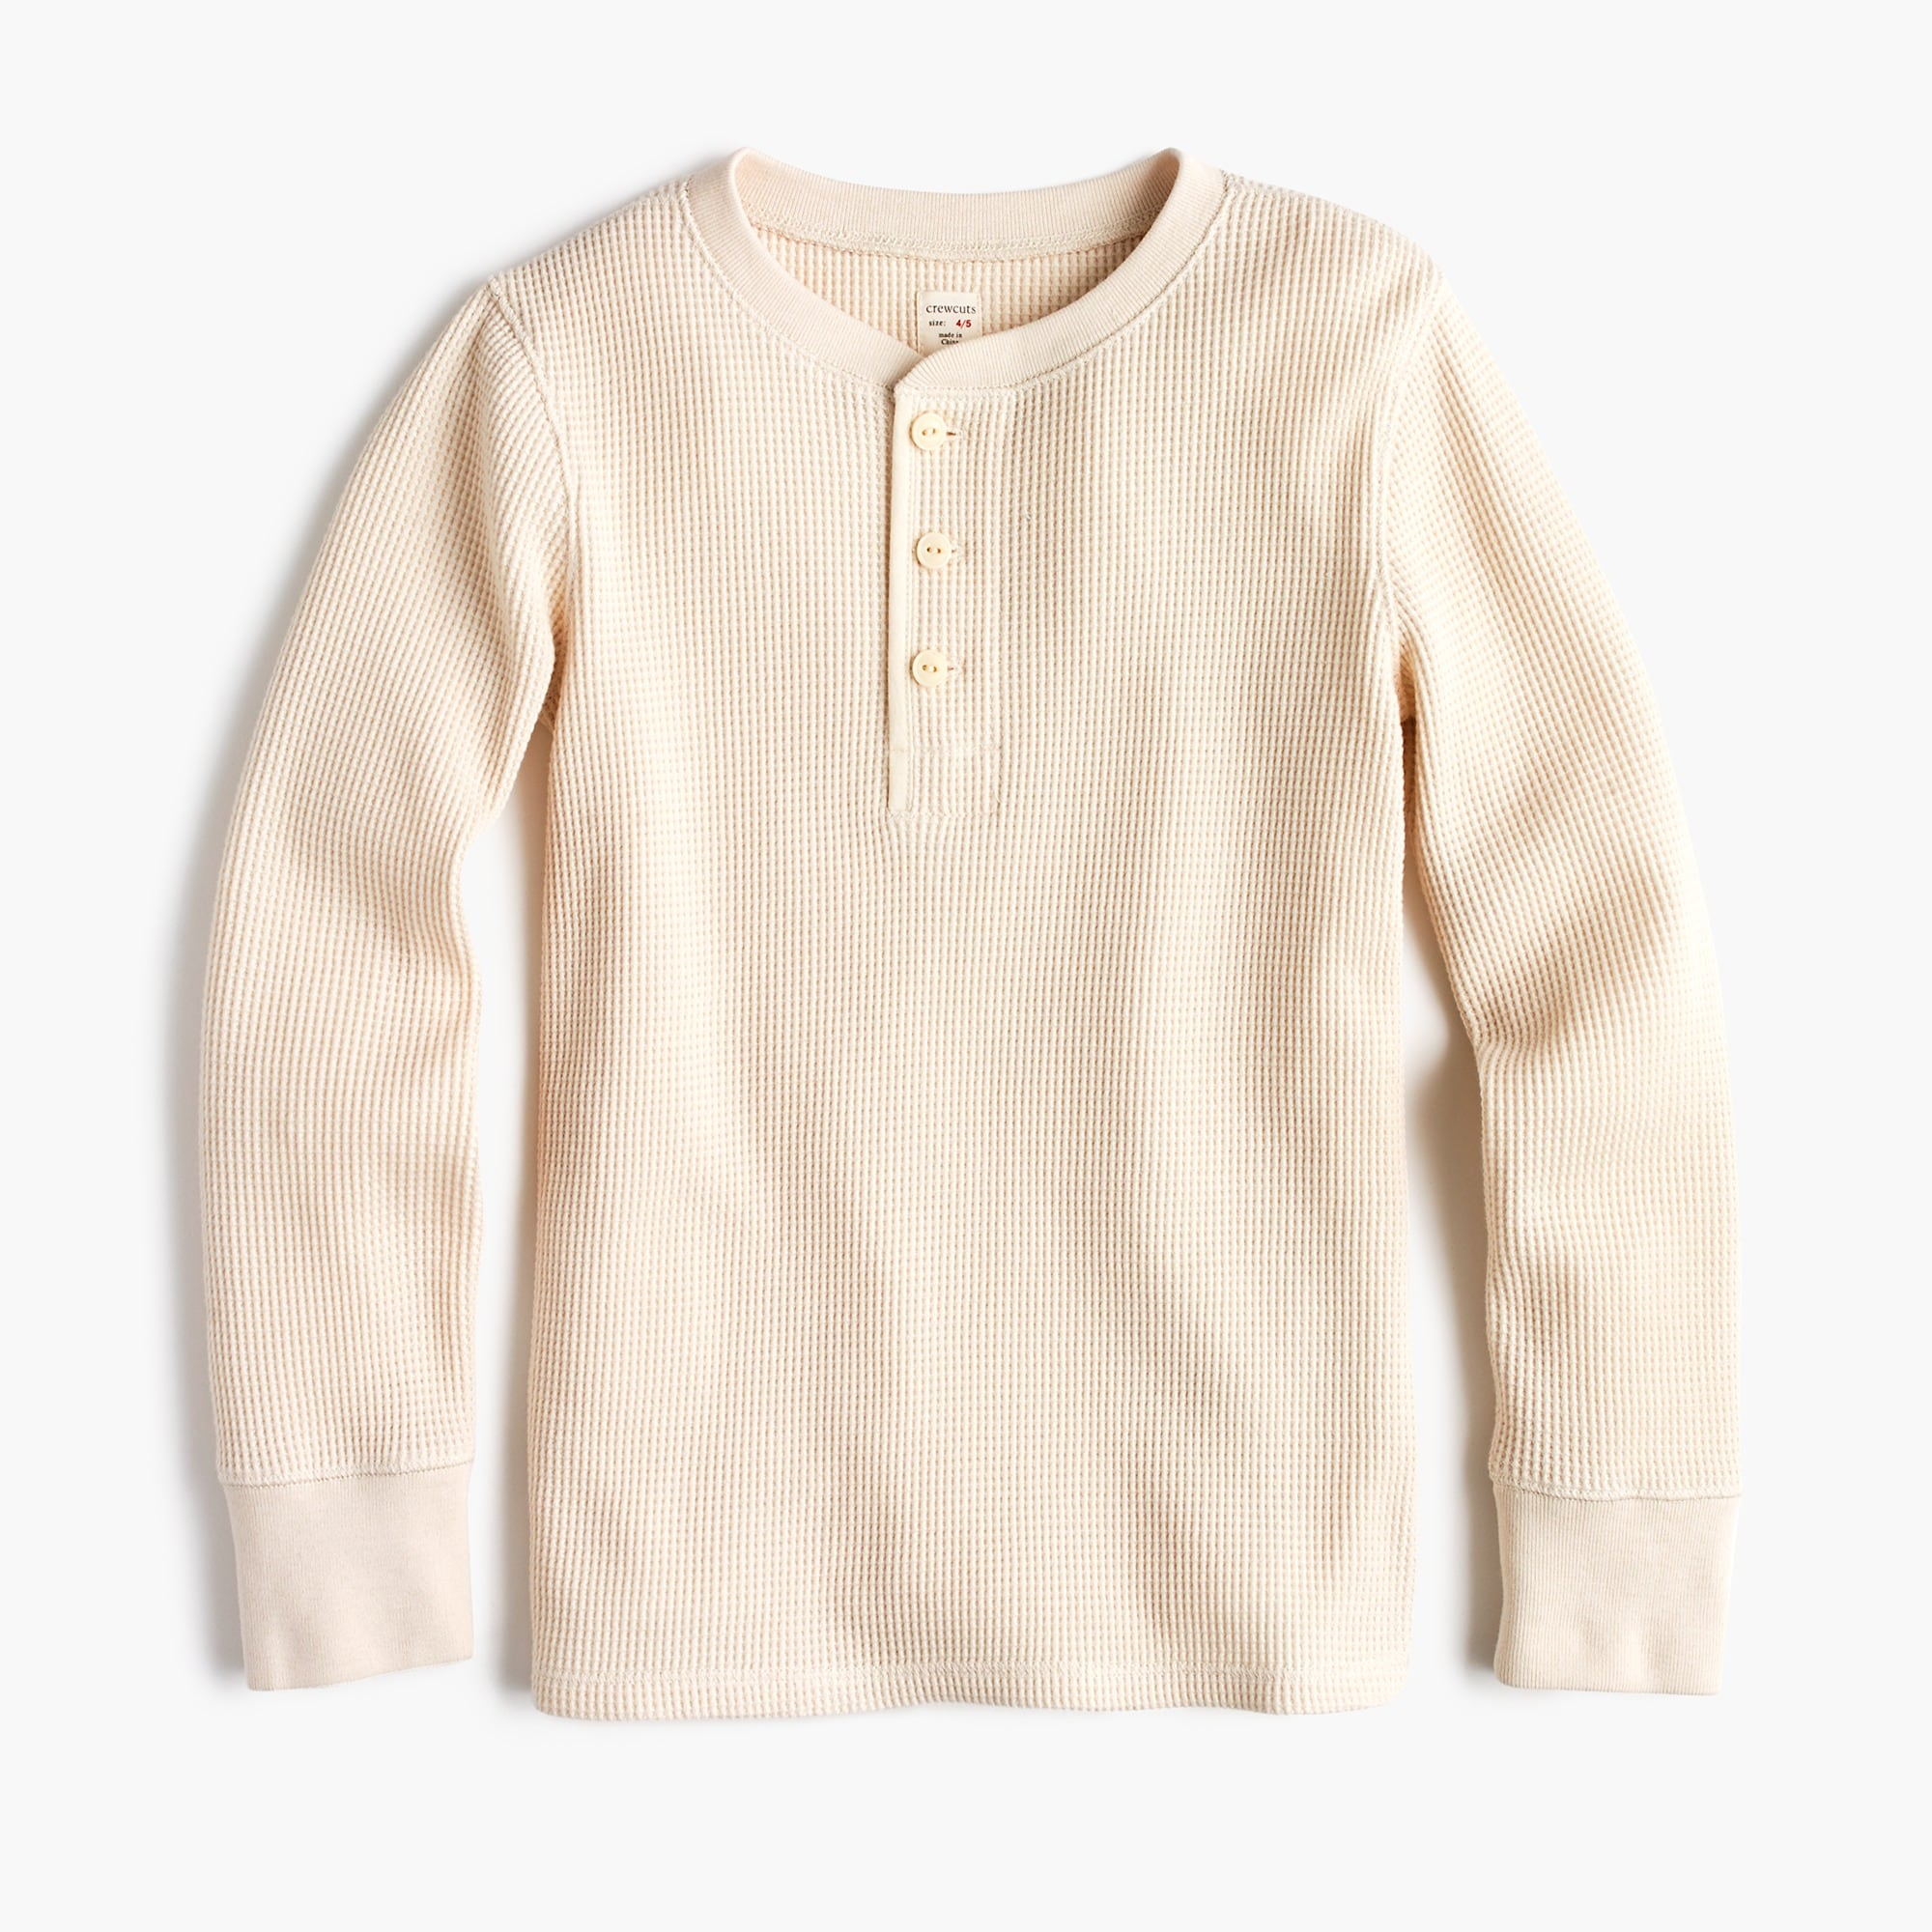 Image 1 for Boys' long-sleeve waffle knit henley shirt